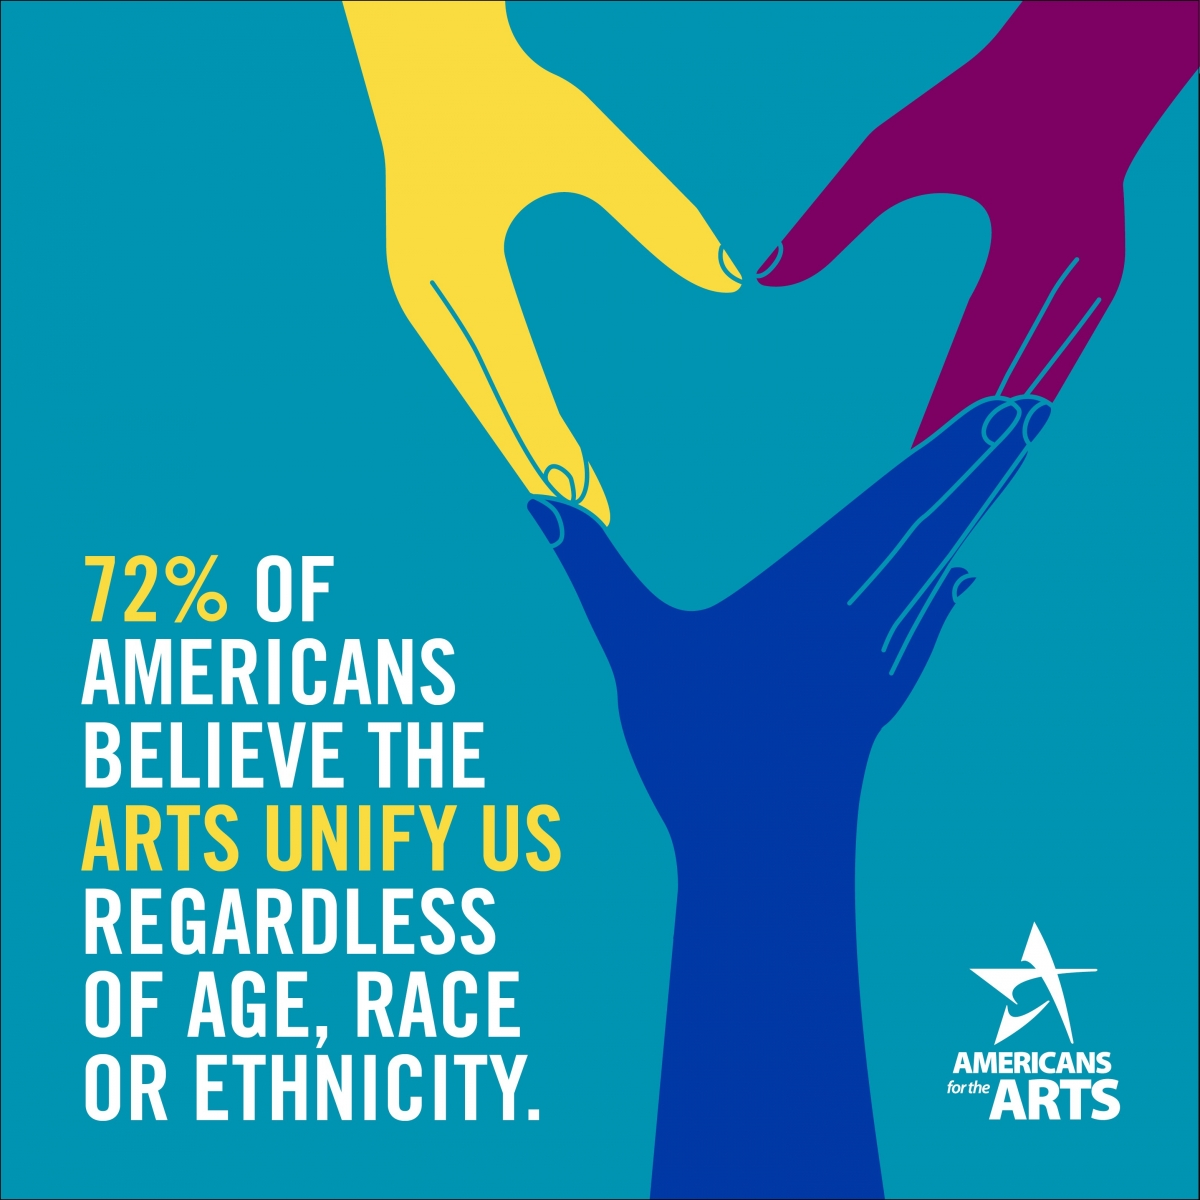 Description: A colorful illustration of three hands reaching toward each other creating a heart shape. Text reads: 72% of Americans believe the arts unify us regardless of age, race, or ethnicity.